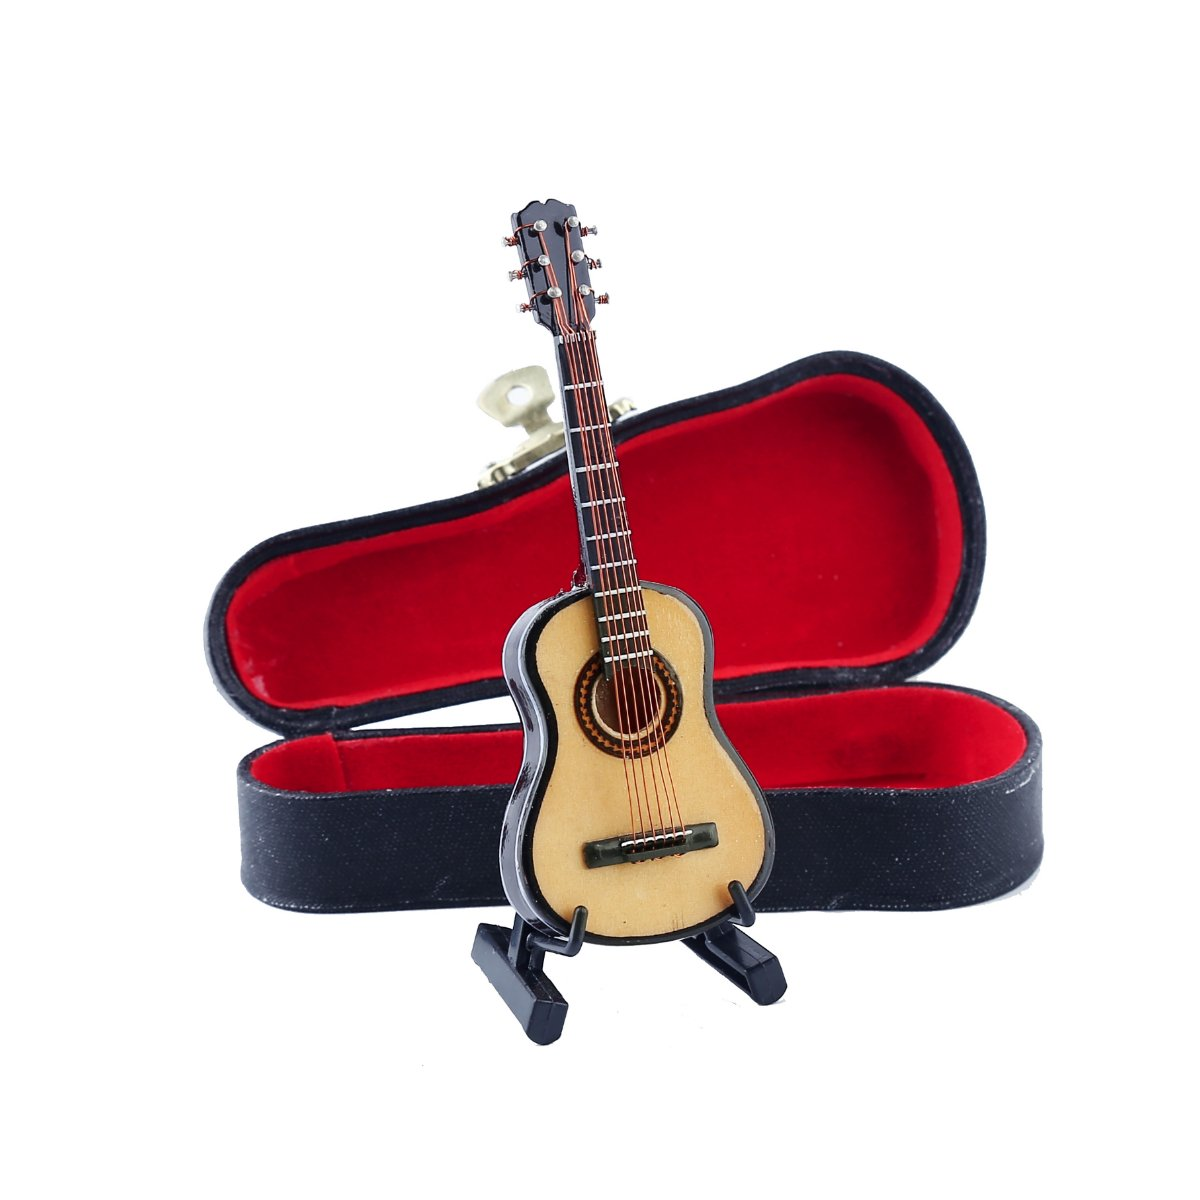 Seawoo Wooden Miniature Guitar with Stand and Case Mini Musical Instrument Miniature Dollhouse Model Home decoration (3.94''x1.42''x0.59'') by Seawoo